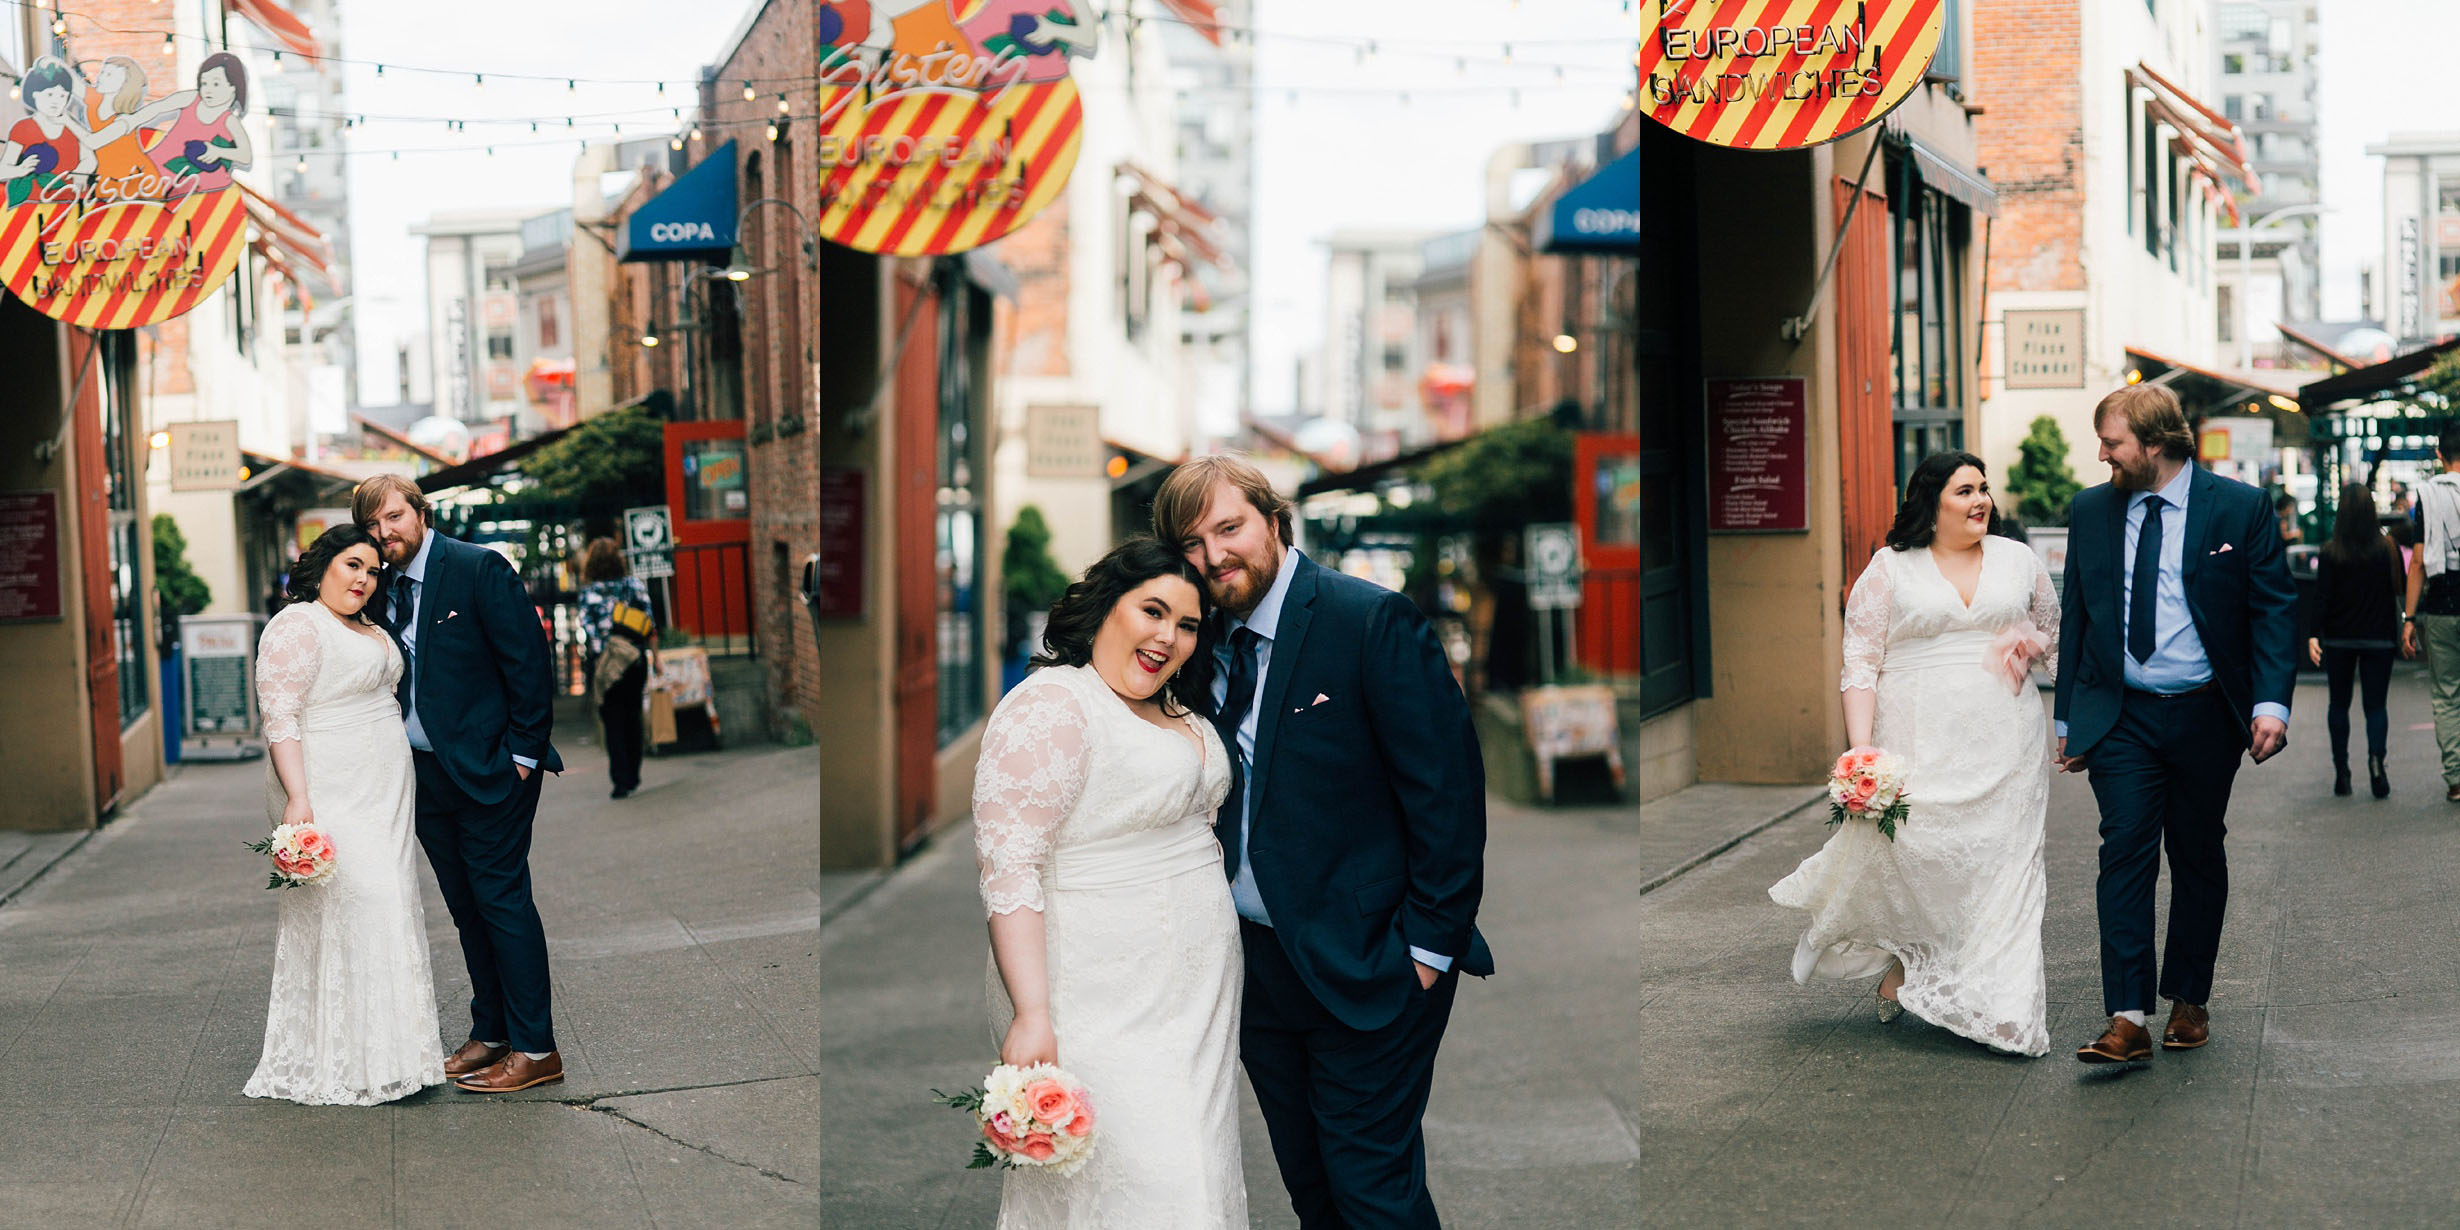 ashley_vos_seattle_Courthouse_ wedding_photographer_0162.jpg